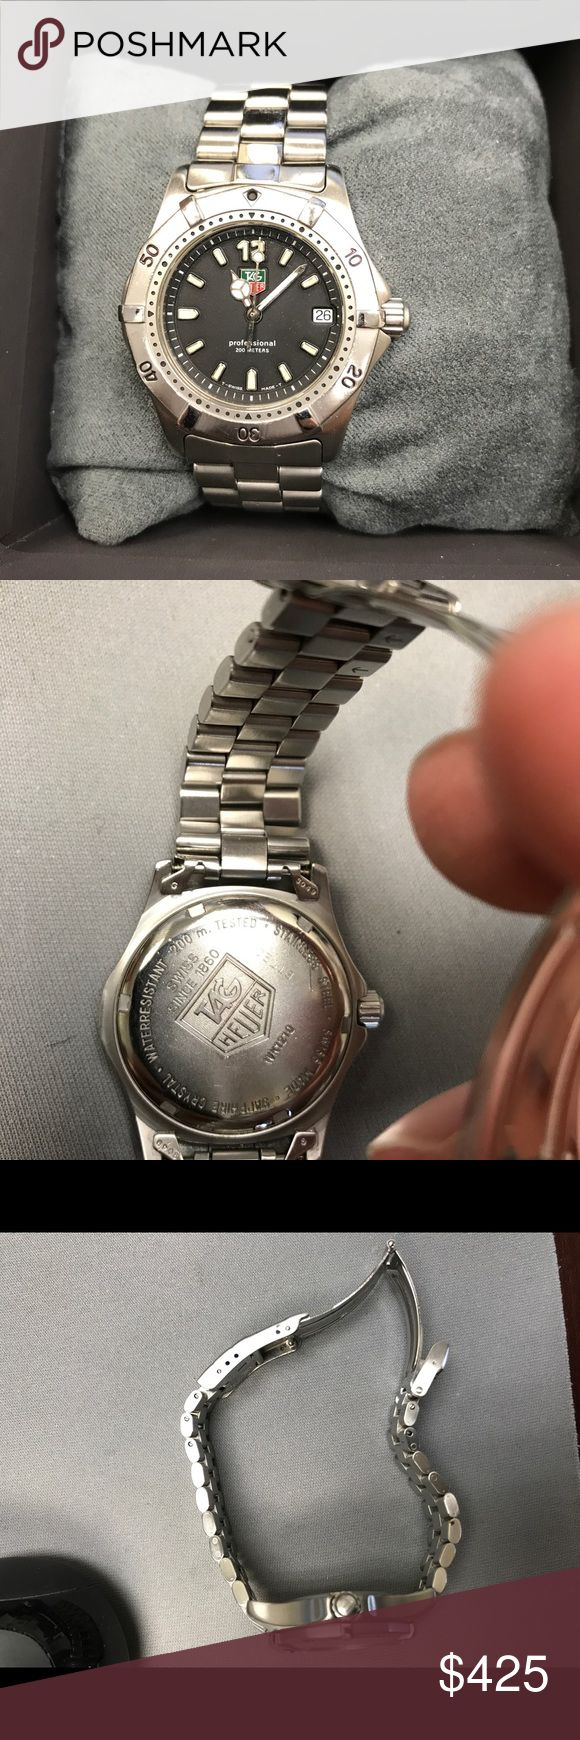 Tag Heuer 35mm unisex watch I am selling a used Tag Heuer Professional WK1210 Quartz Black Stainless Steel 35mm Unisex Watch. 100% authentic. No box or extra links. Tag Heuer Accessories Watches